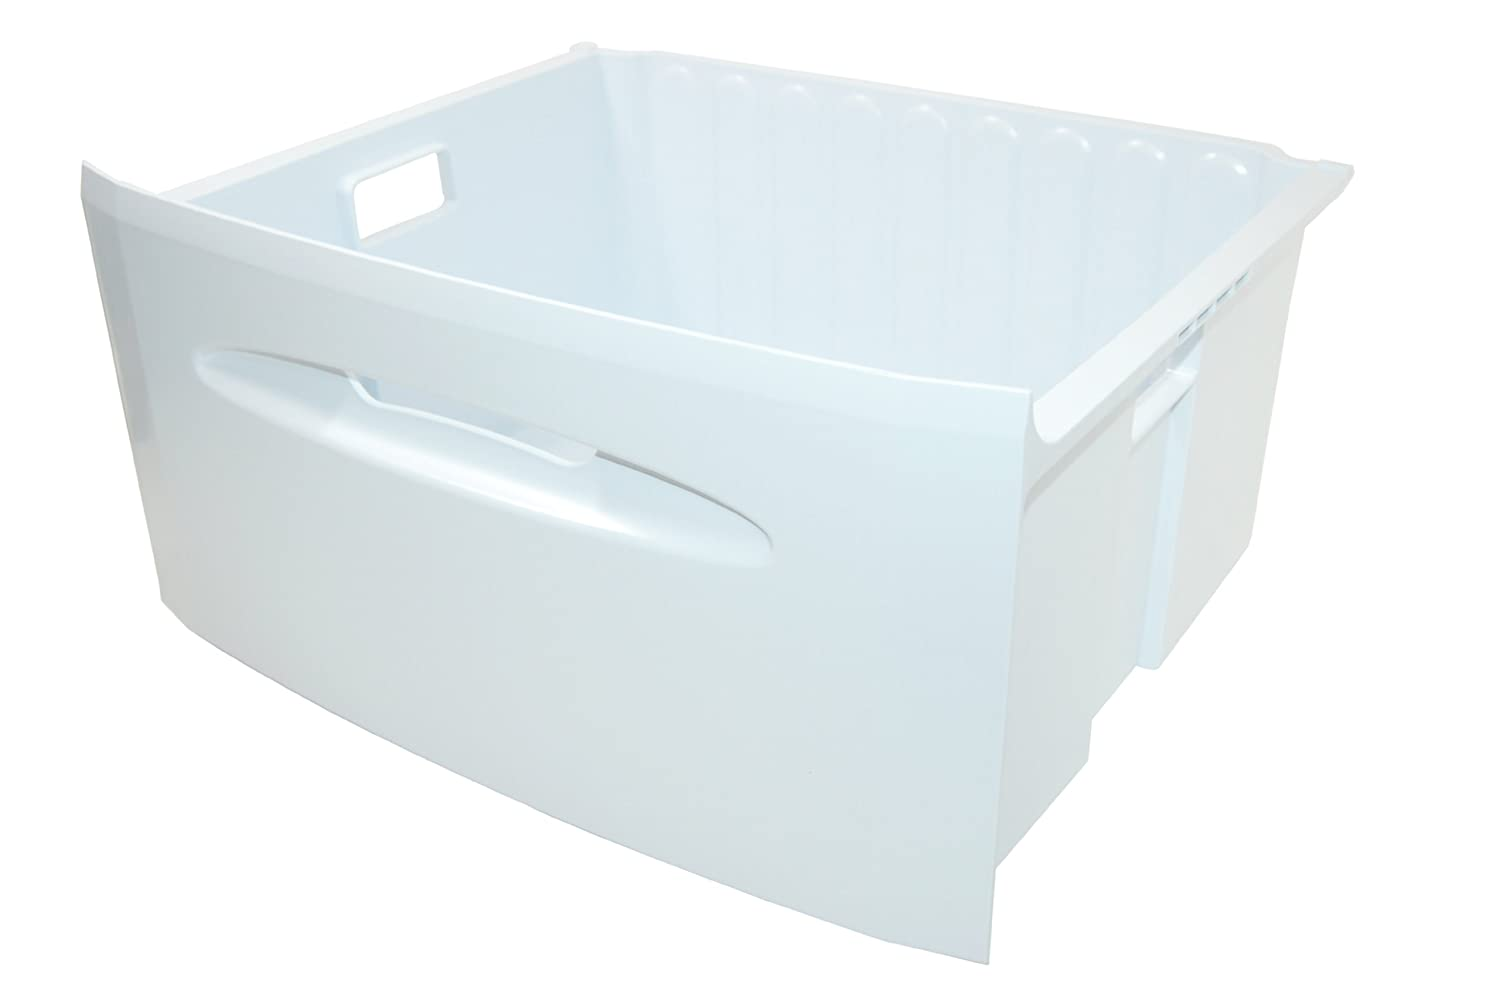 Ariston Hotpoint Fridge Freezer Middle Drawer - 240mm Tall. Genuine part number C00098538